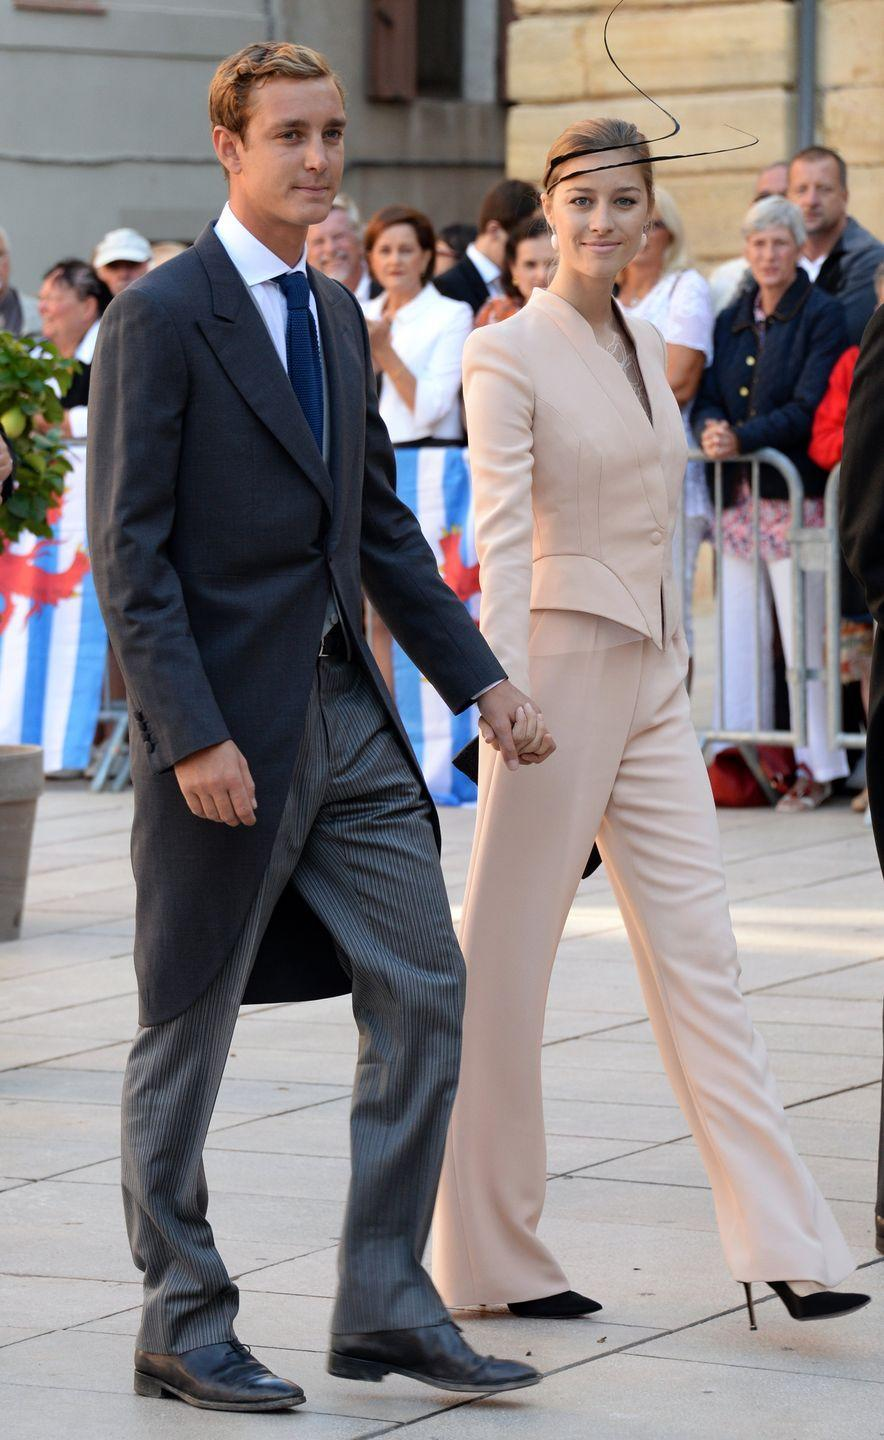 <p>In 2014, Beatrice wed the youngest son of Princess Caroline of Monaco (also Grace Kelly's grandson), Pierre Casiraghi, in Monte Carlo. Borromeo and Pierre met while they were both studying at the University Luigi Bocconi in Milan. Before her marriage, she received degrees in law and journalism and contributed to <em>Newsweek</em> and <em>The Daily Beast</em>.</p>